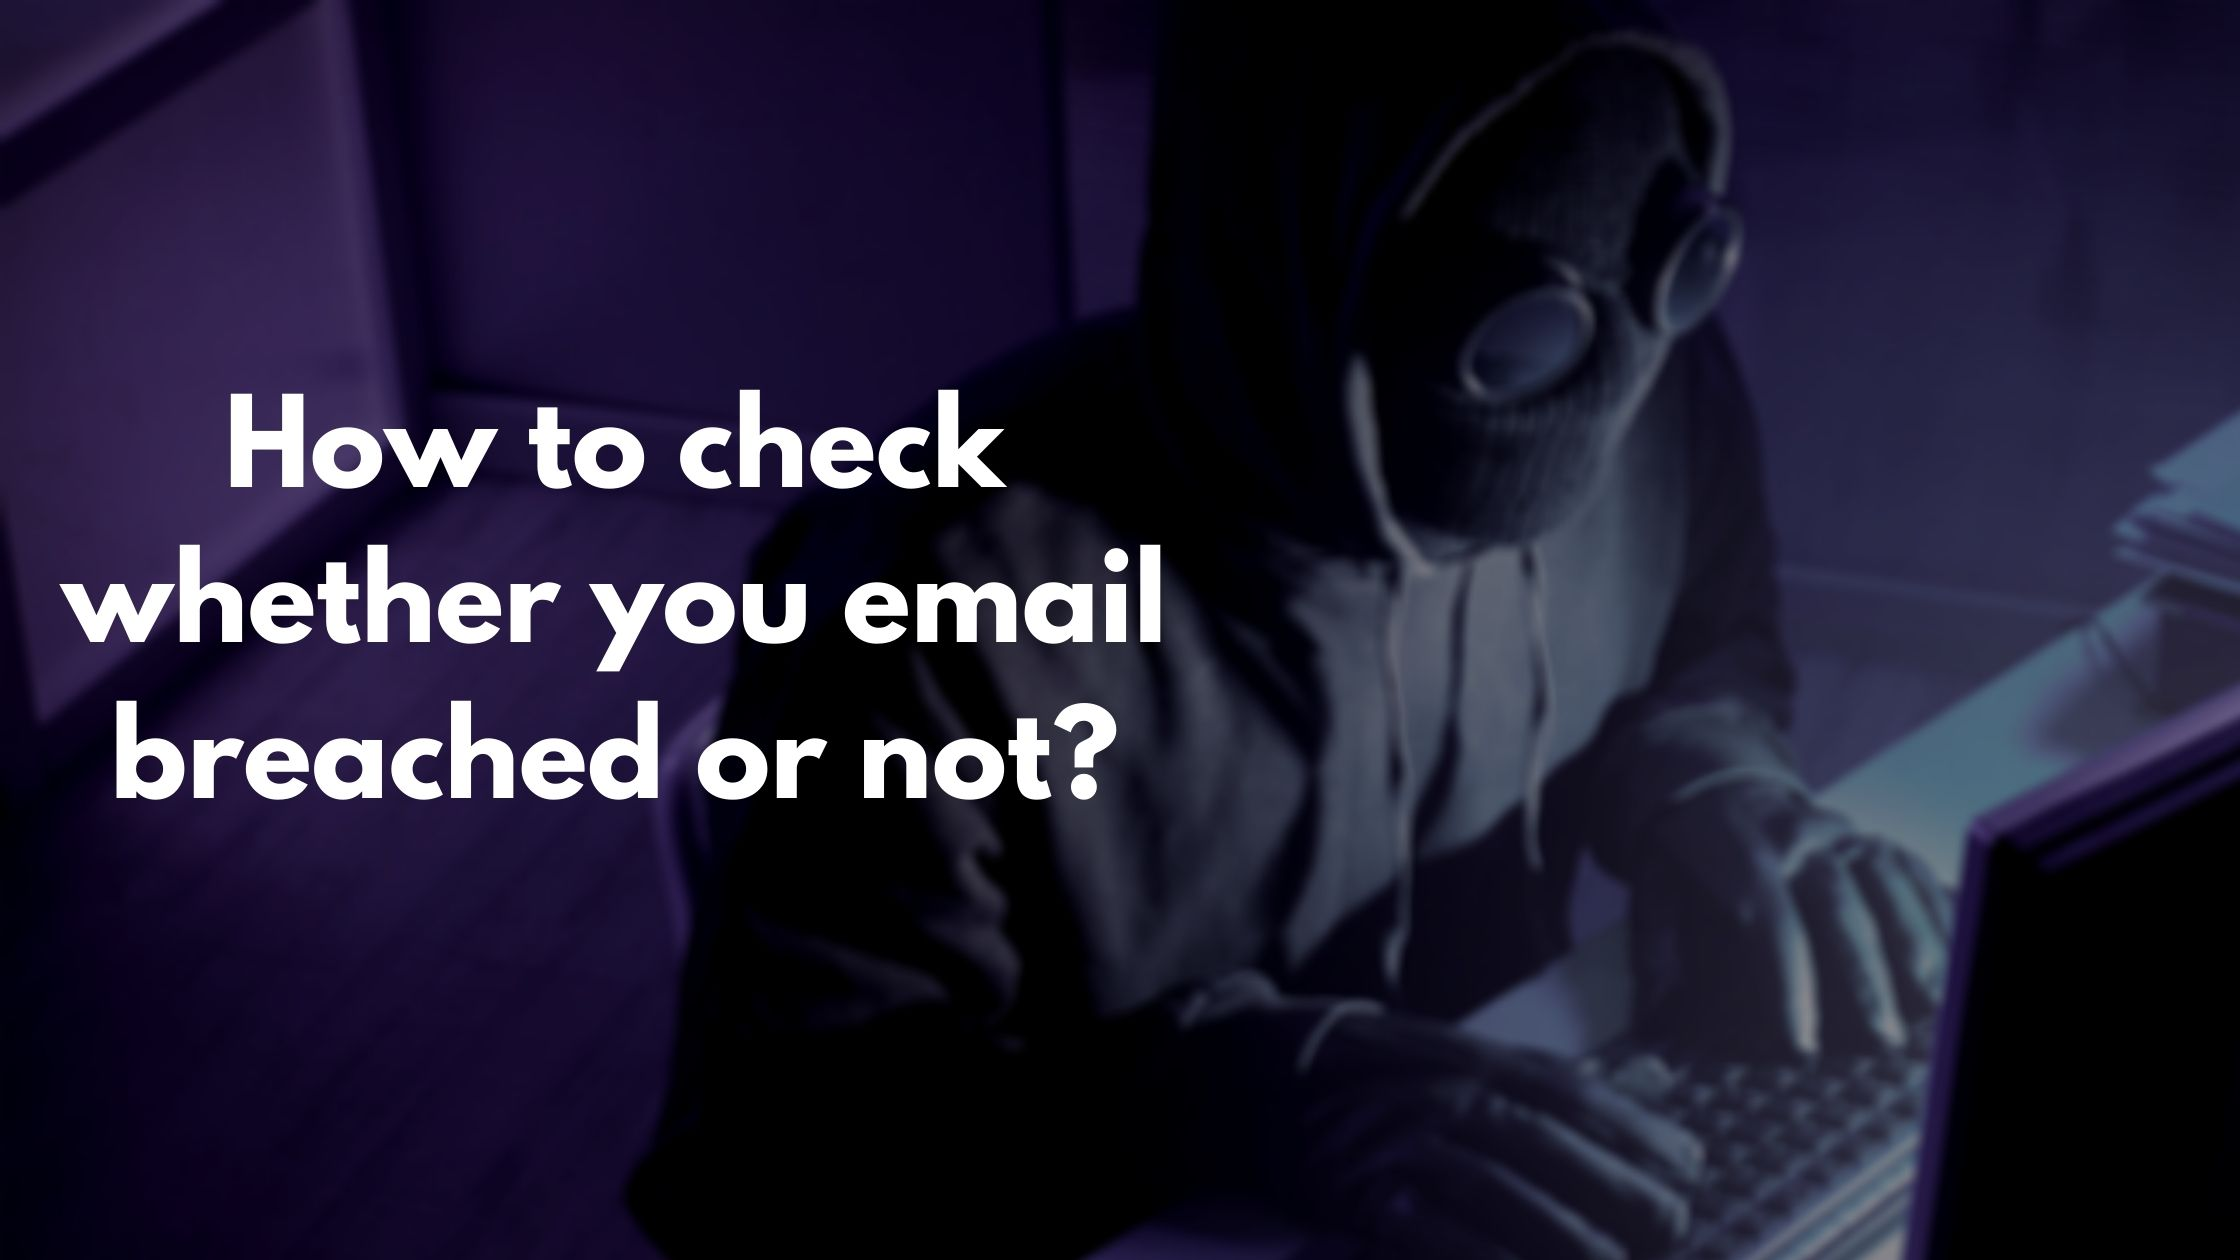 Check if your email associated accounts are breached